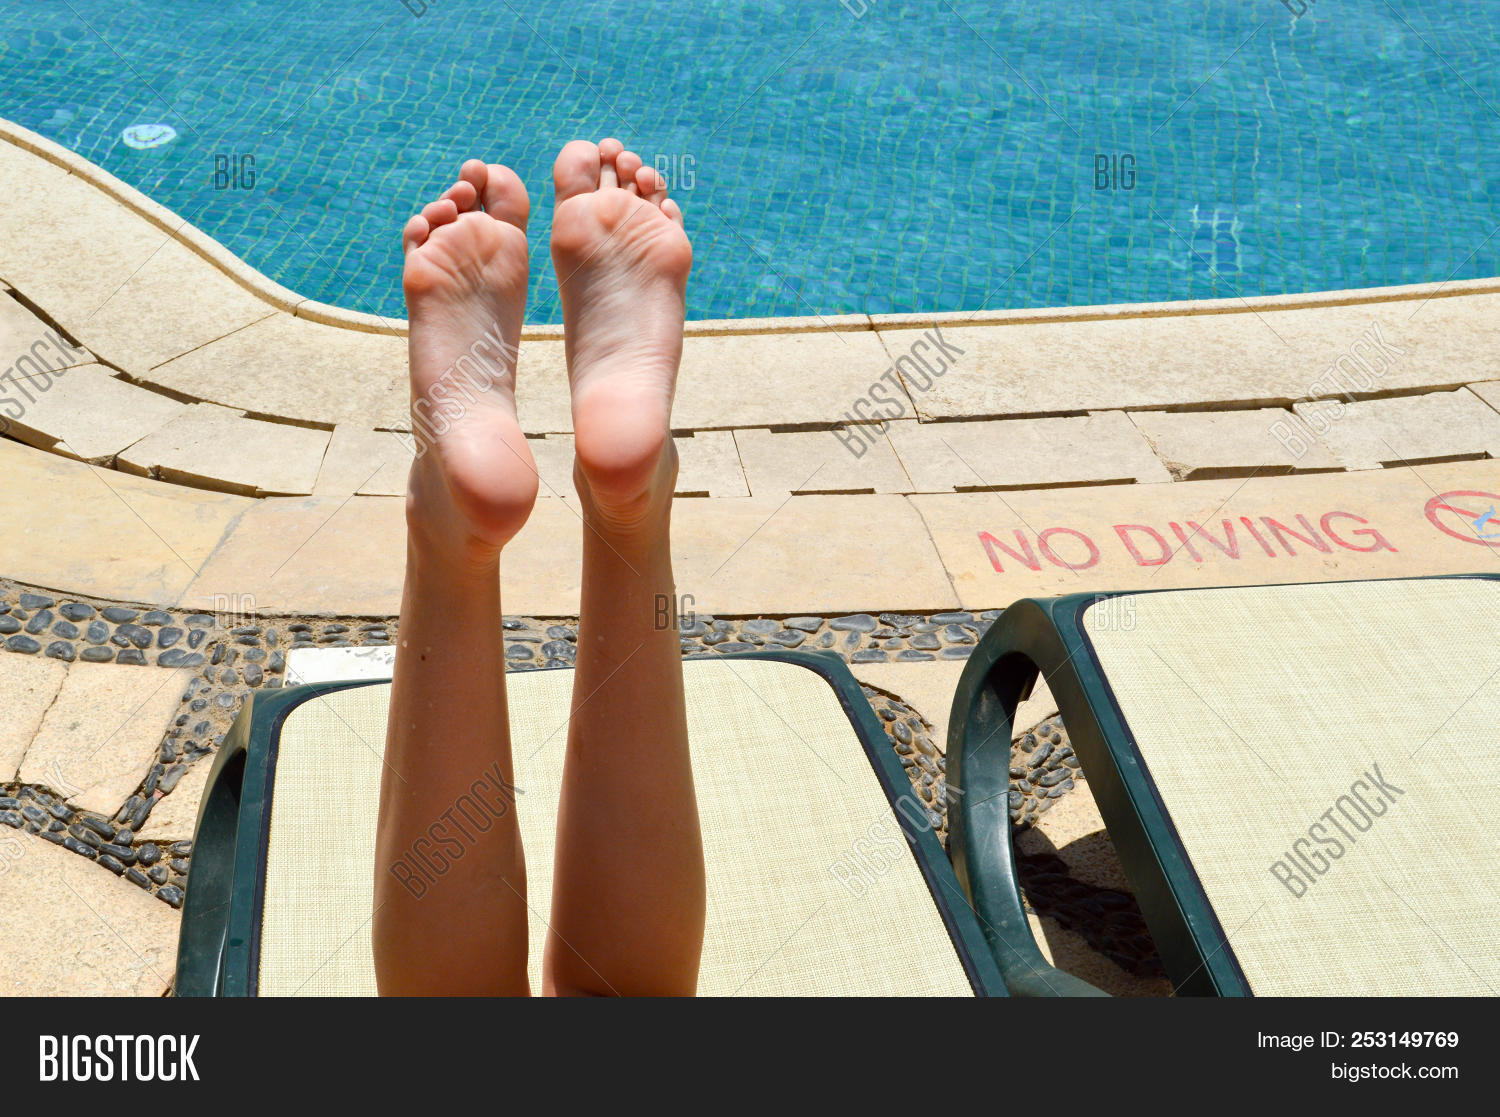 Final, sorry, Women with beautiful legs and feet matchless message